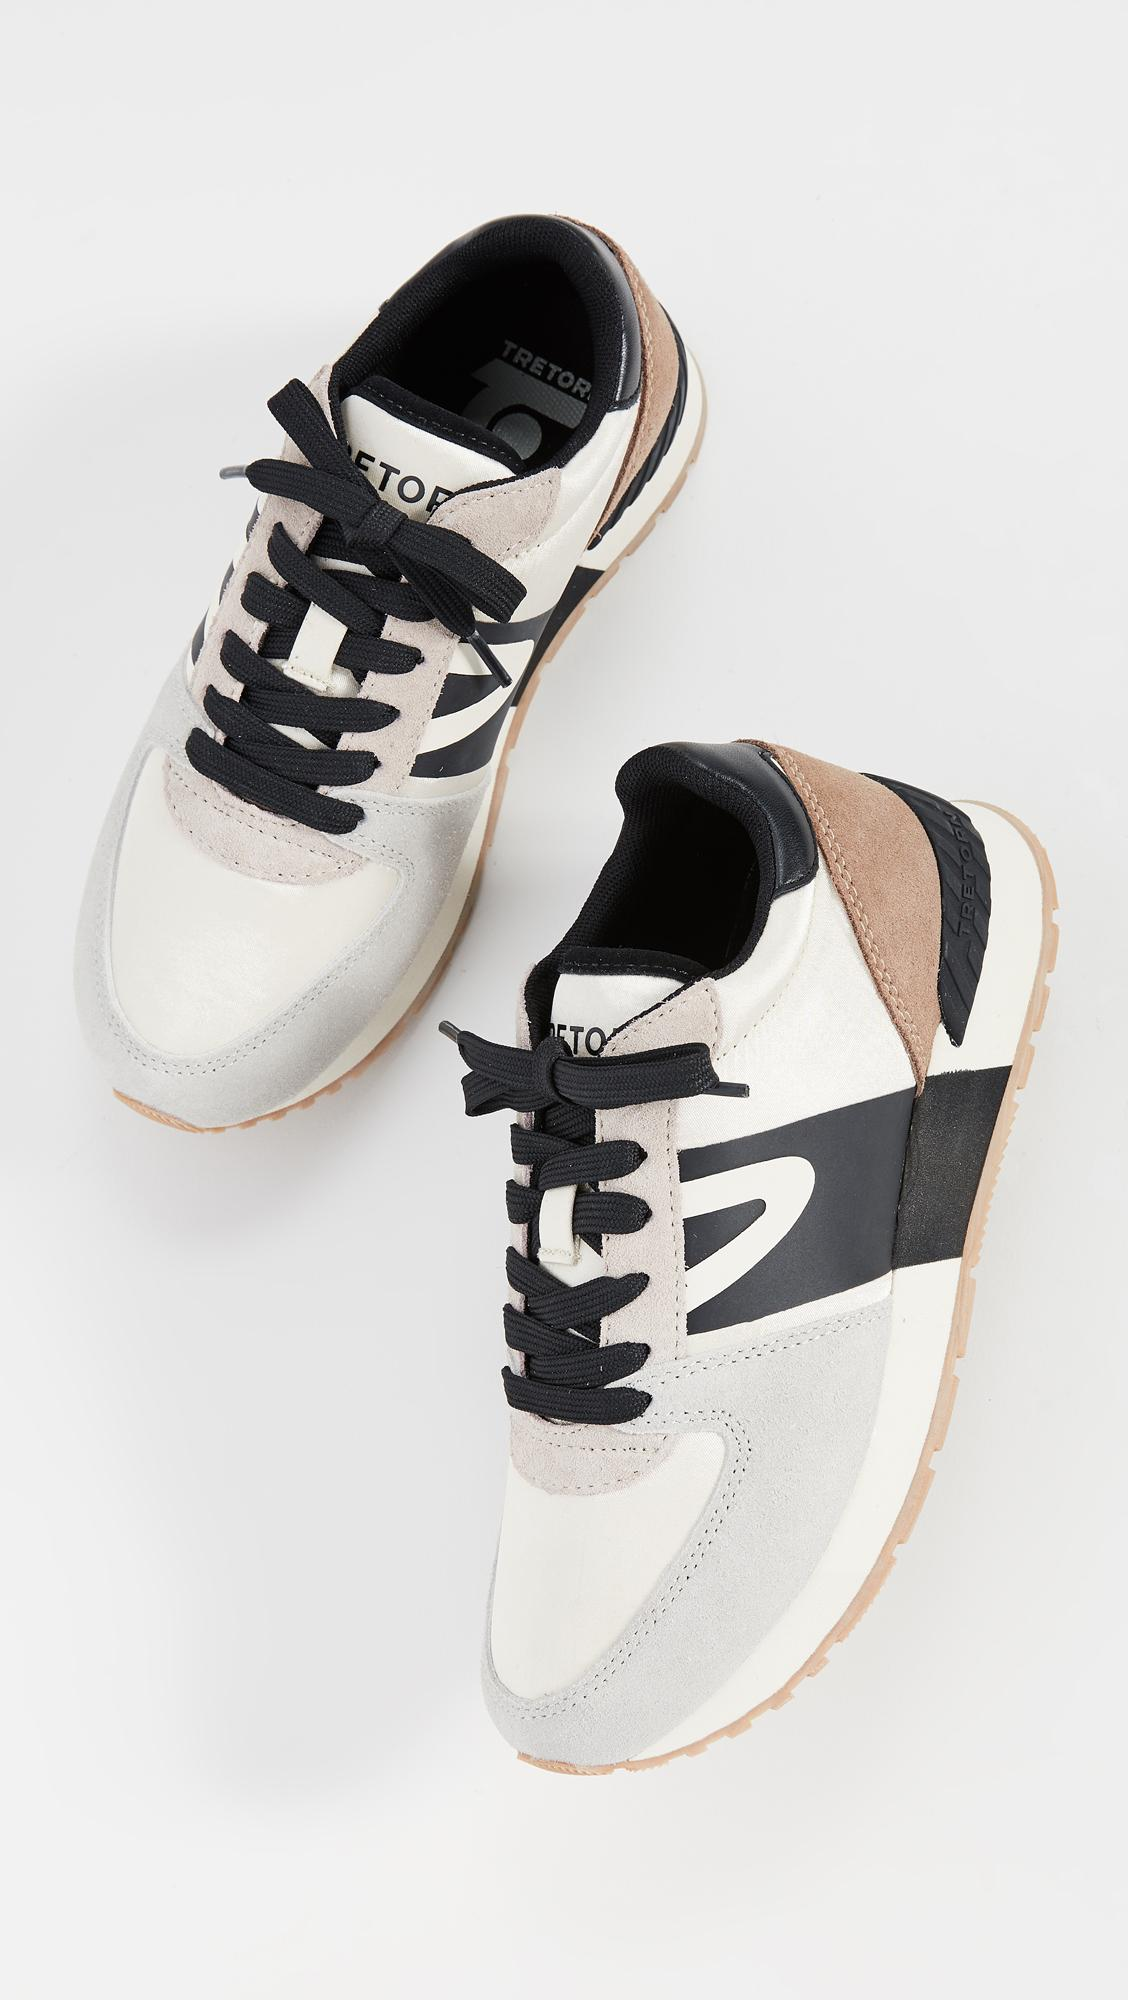 Tretorn Satin Loyola 2 Lace Up Sneakers